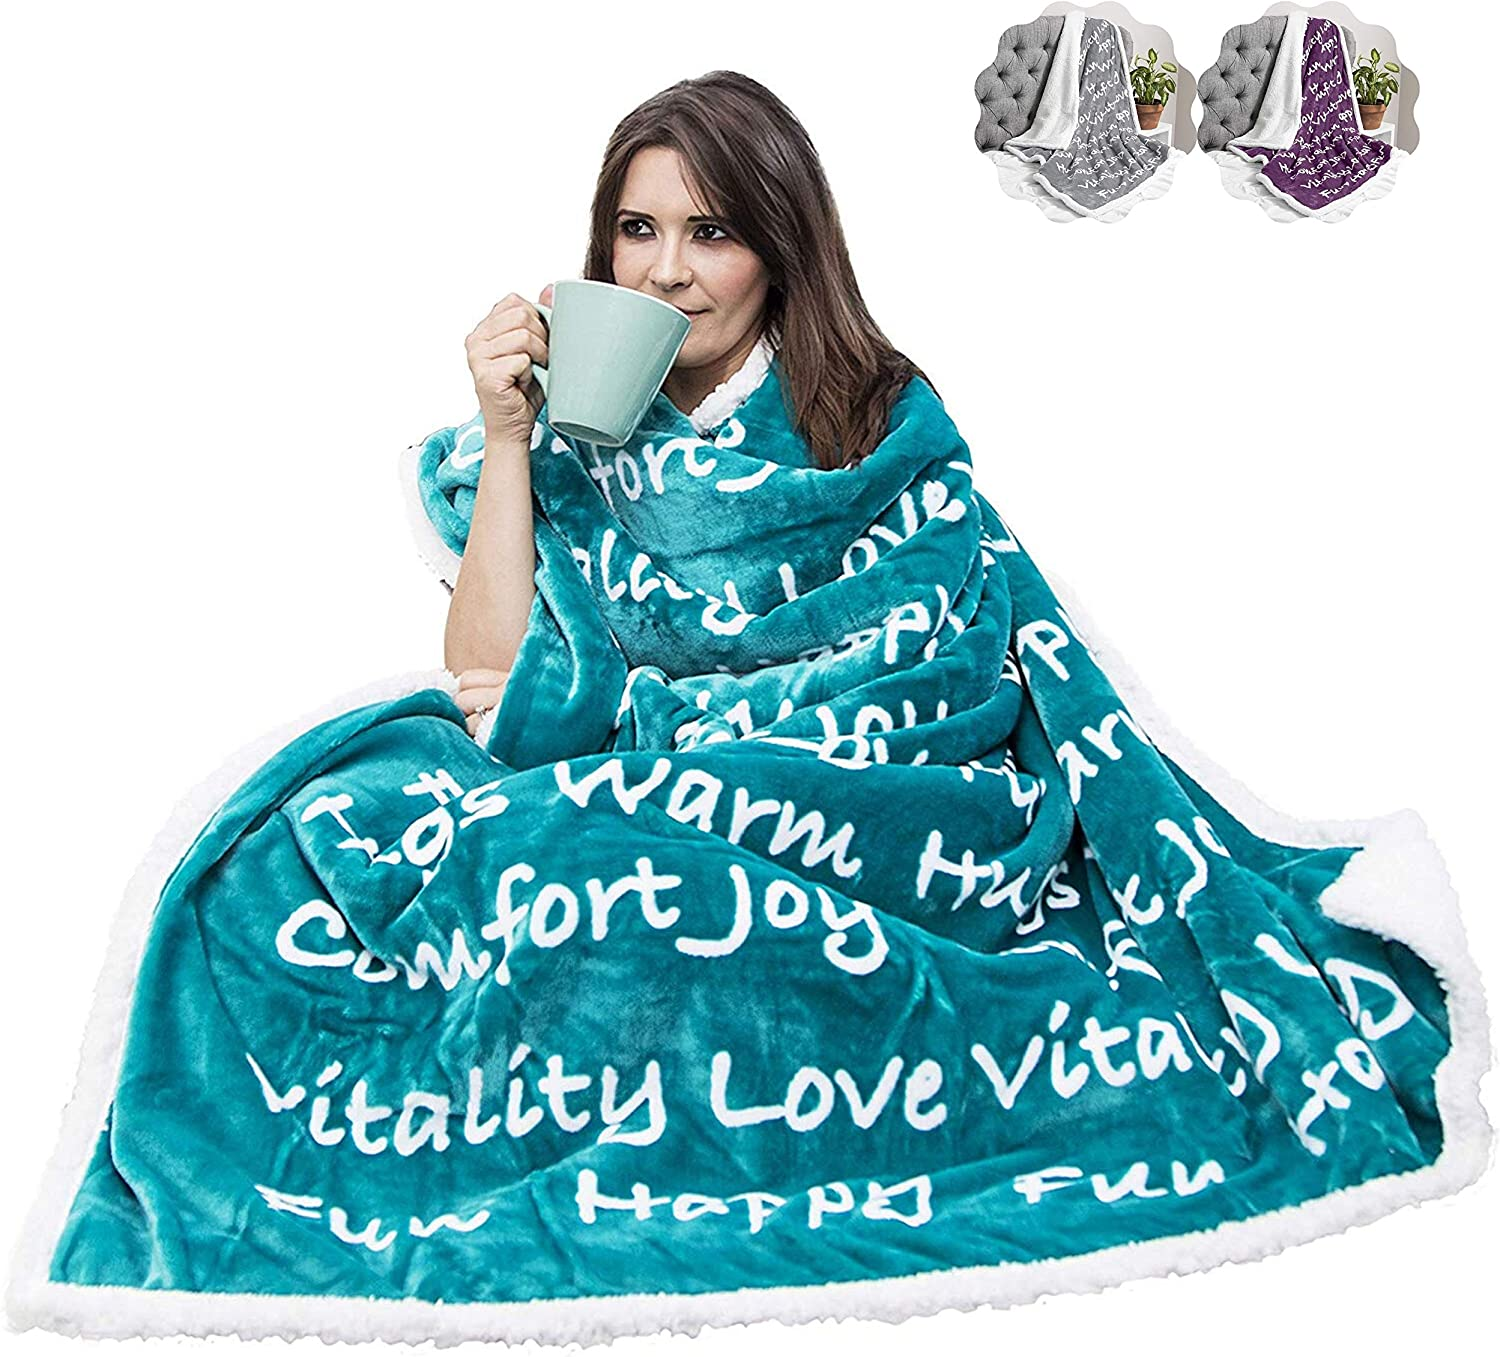 Thick Sherpa Fabric Encouragement and Positive Energy Sleep and Recovery Healing Thoughts Throw Blanket Cancer Patients Purple Warm Get Well Gift for Men and Women